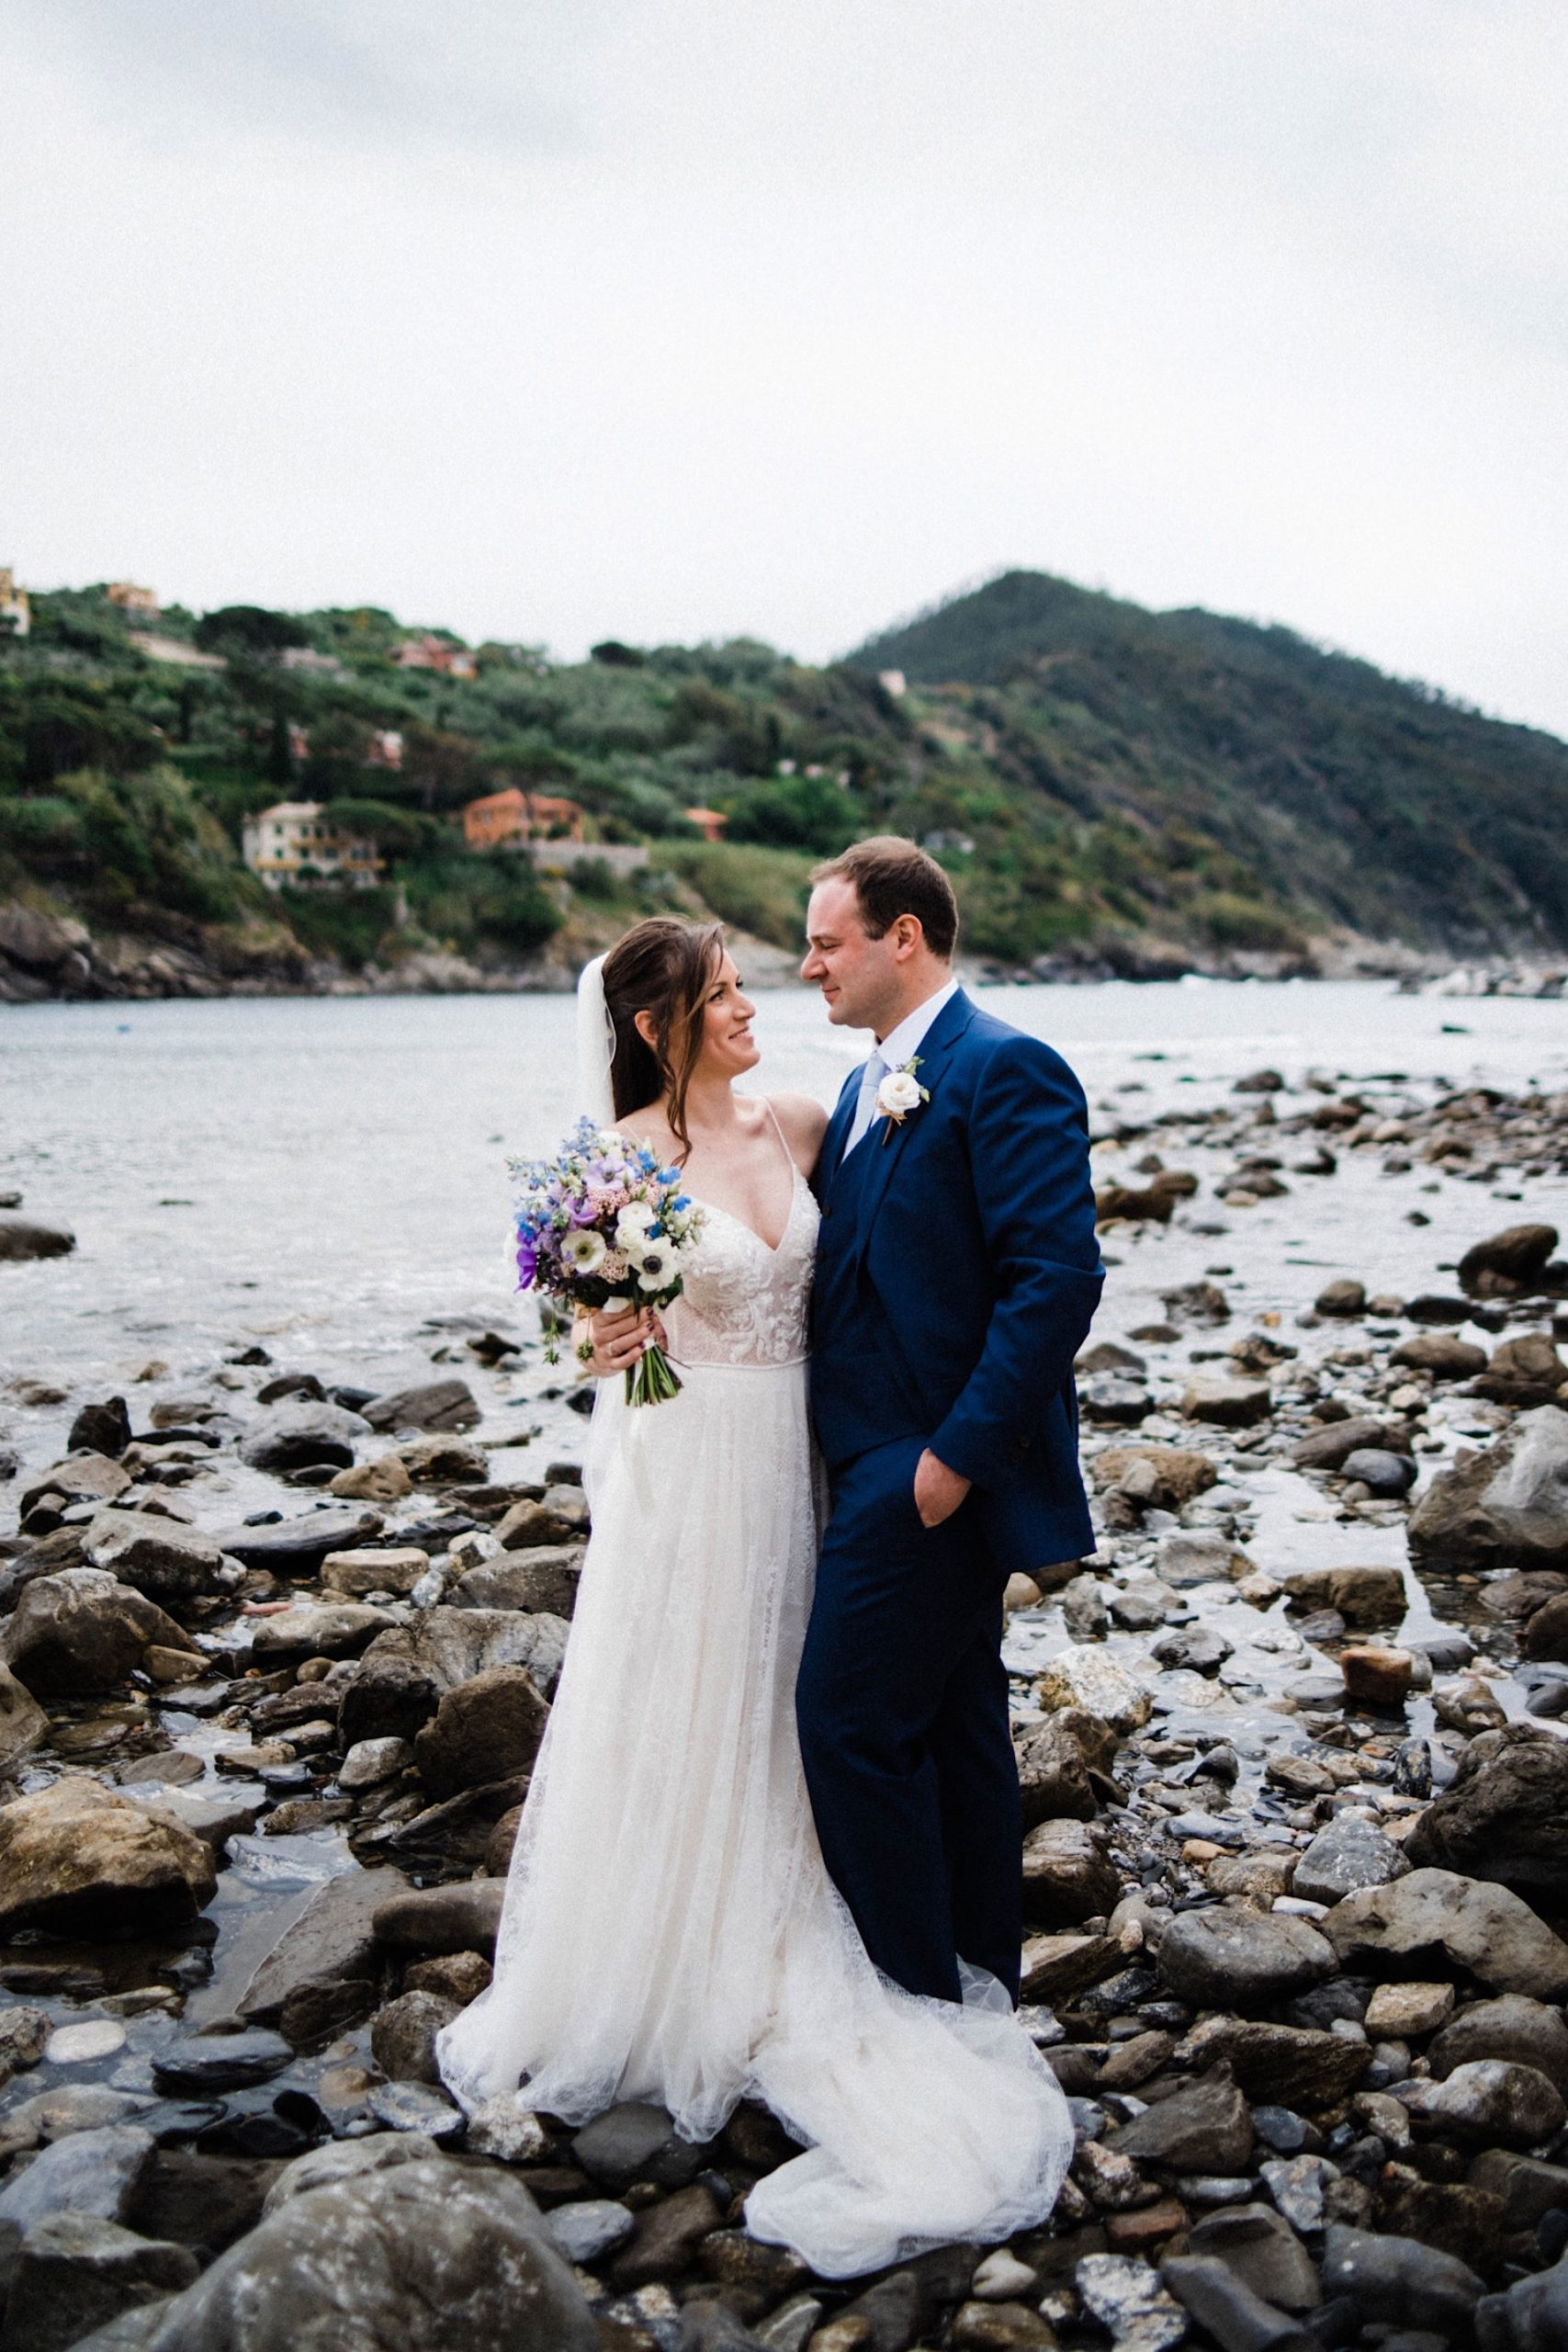 Sestri Levante Destination Wedding Photography of a bride and groom standing together in front of the Bay of Silence.